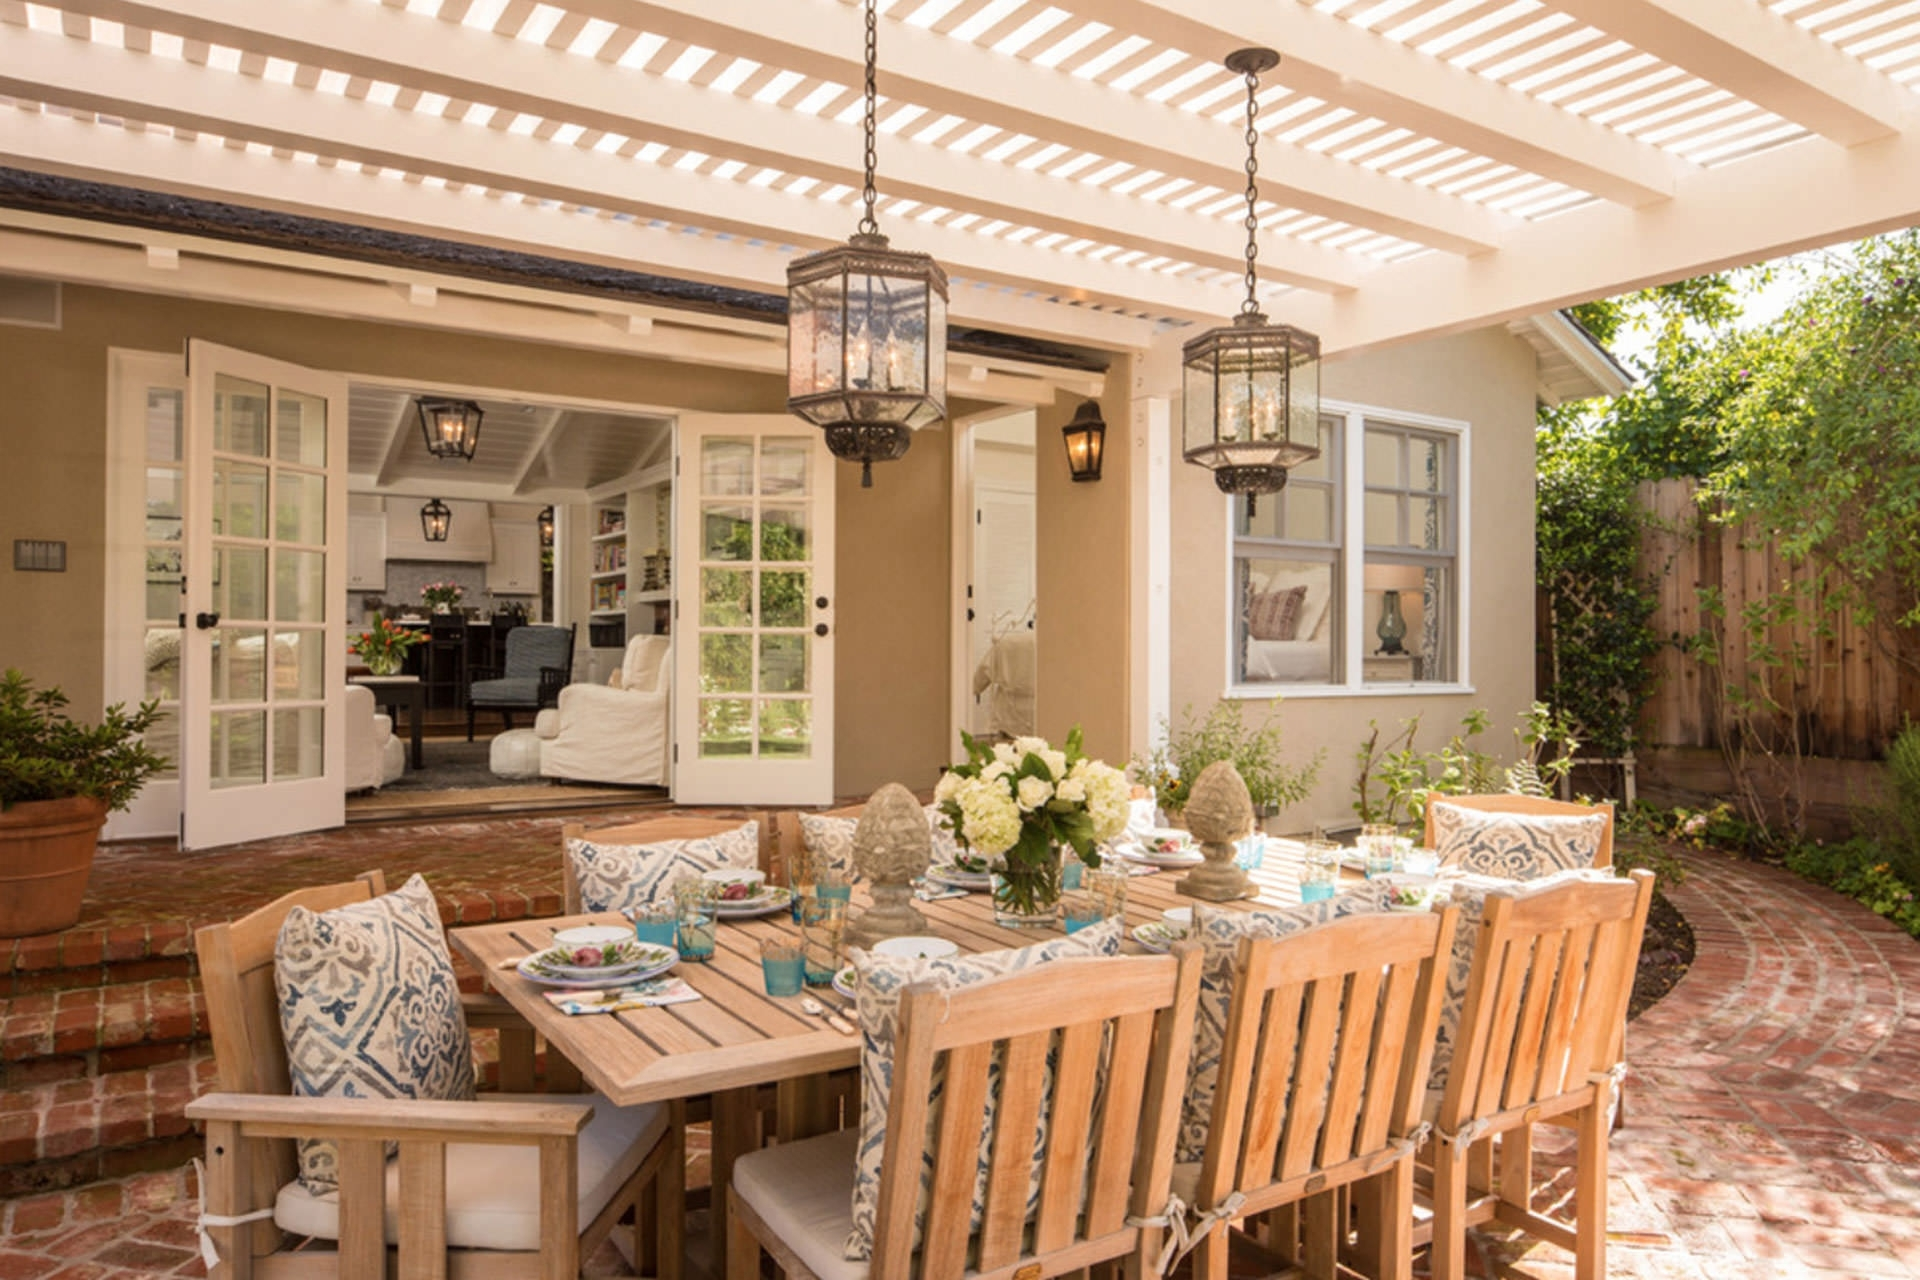 Outdoor Dining Lanterns With Most Recently Released 33 Neat Design Outdoor Lantern Lighting Ideas Five Pergola To (View 13 of 20)